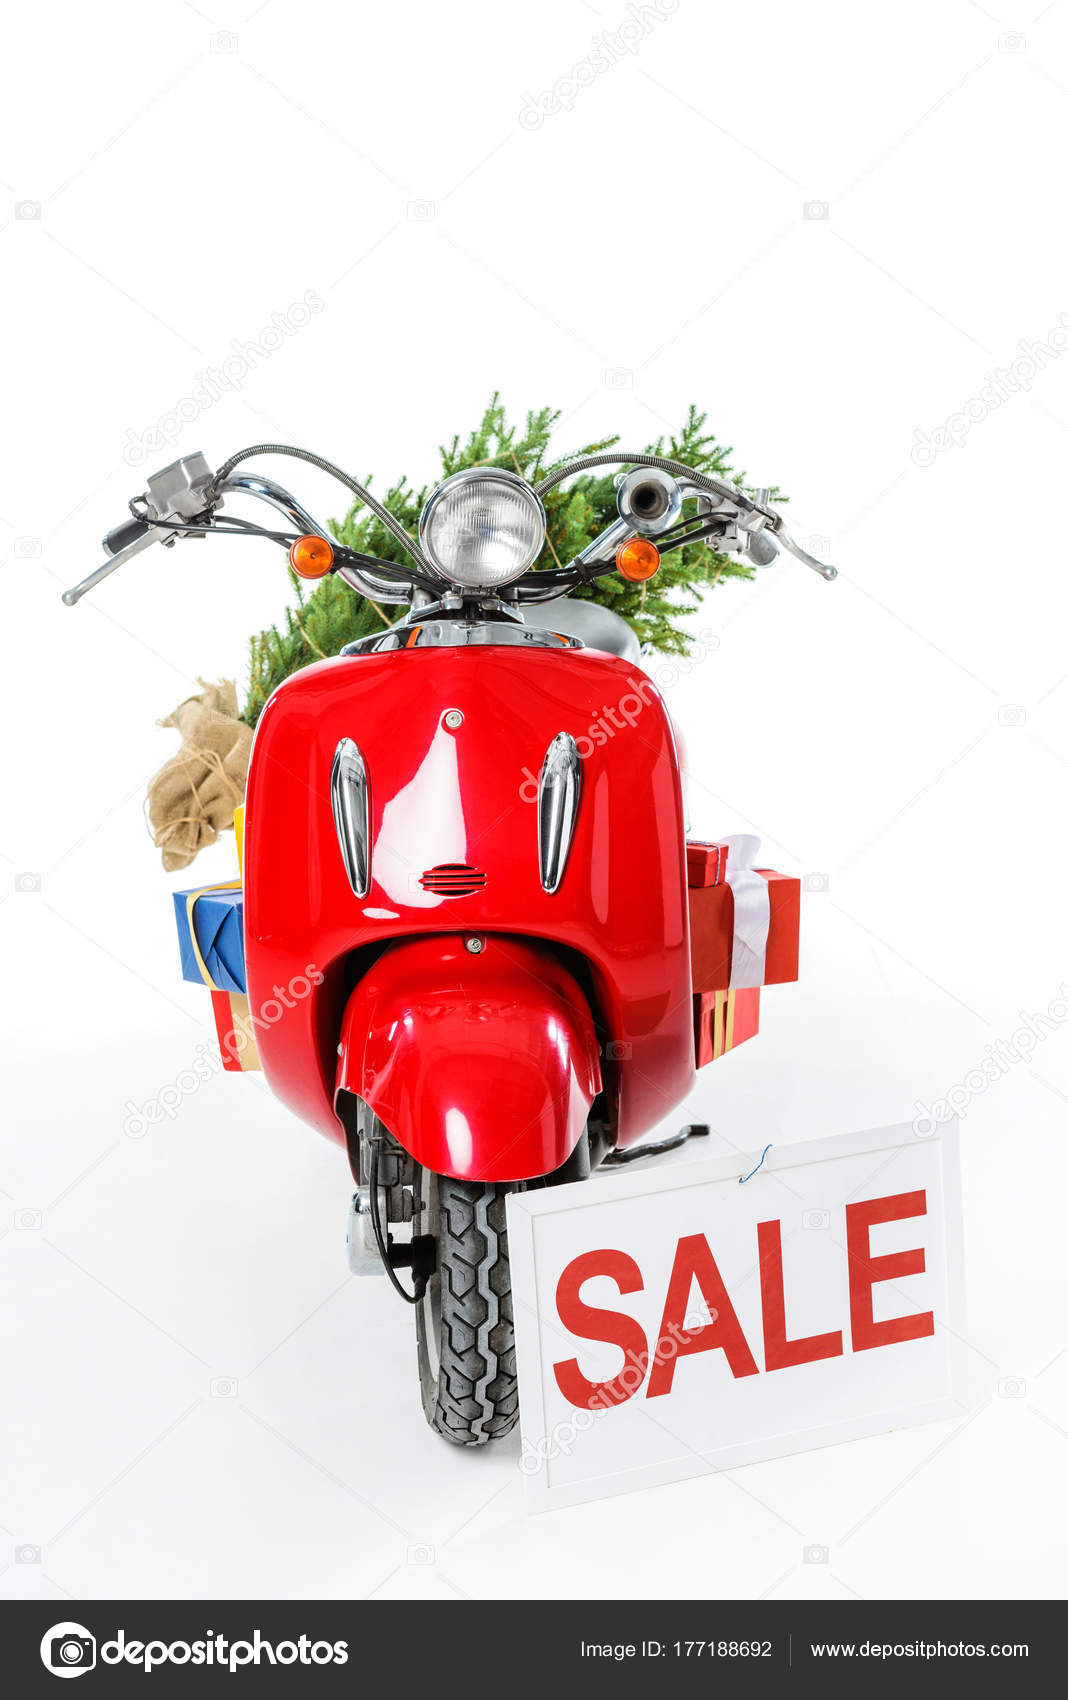 Christmas Tree Gifts Red Scooter Sale Sign Isolated White ...